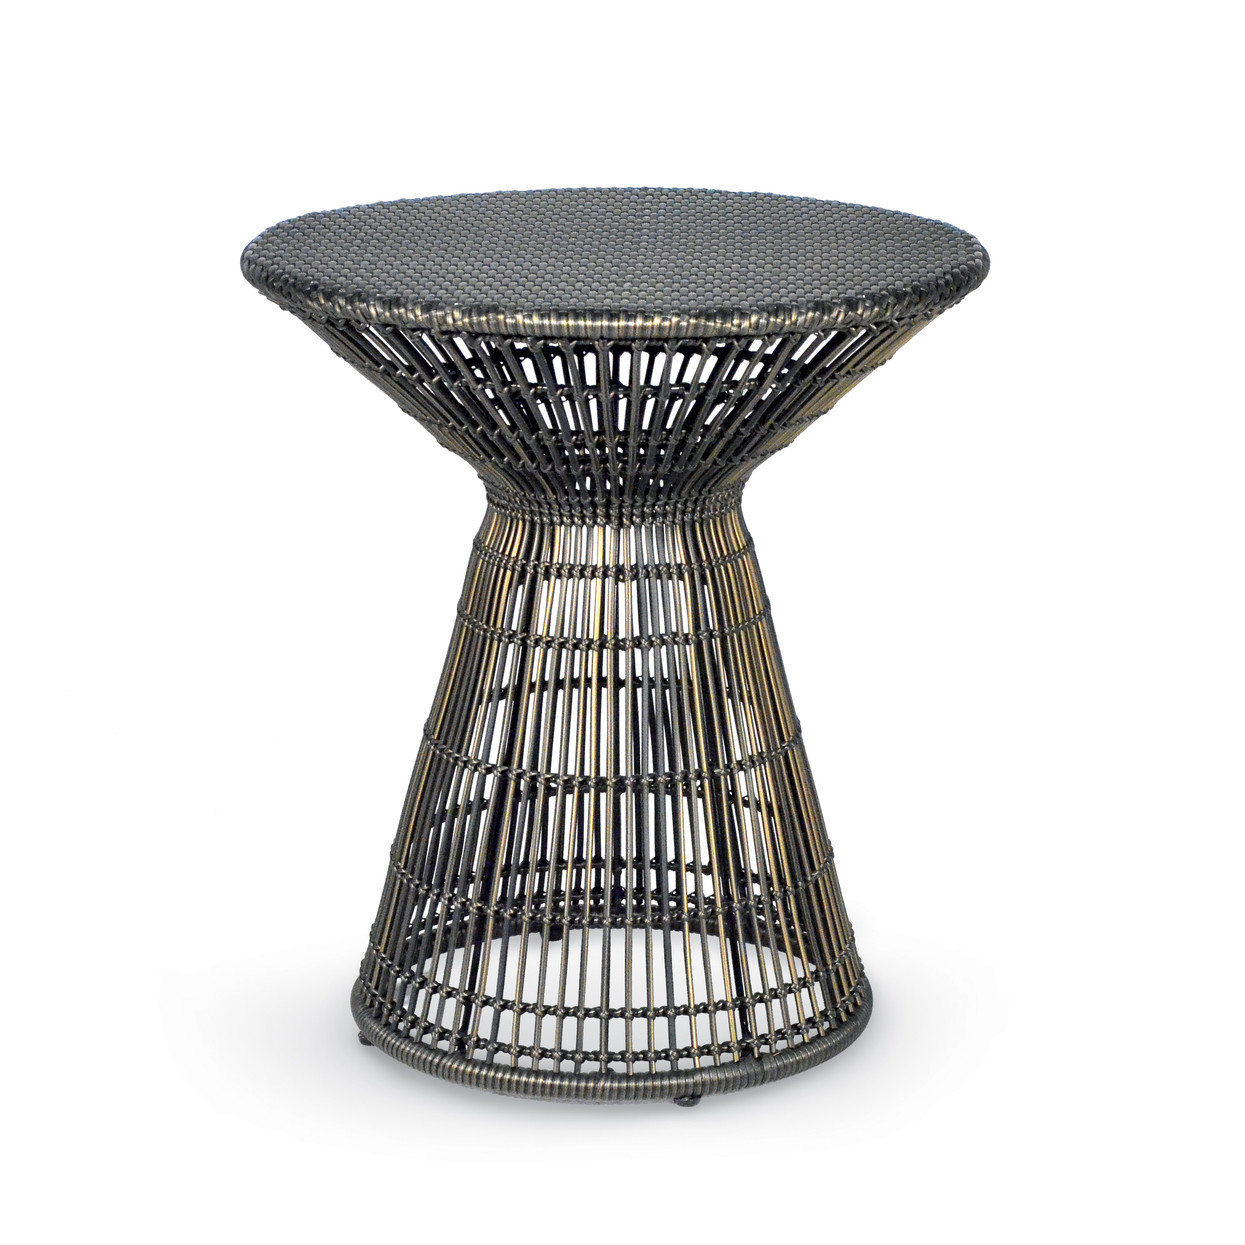 Best ideas about Outdoor Side Table . Save or Pin Verona Outdoor Side Table Espresso Now.